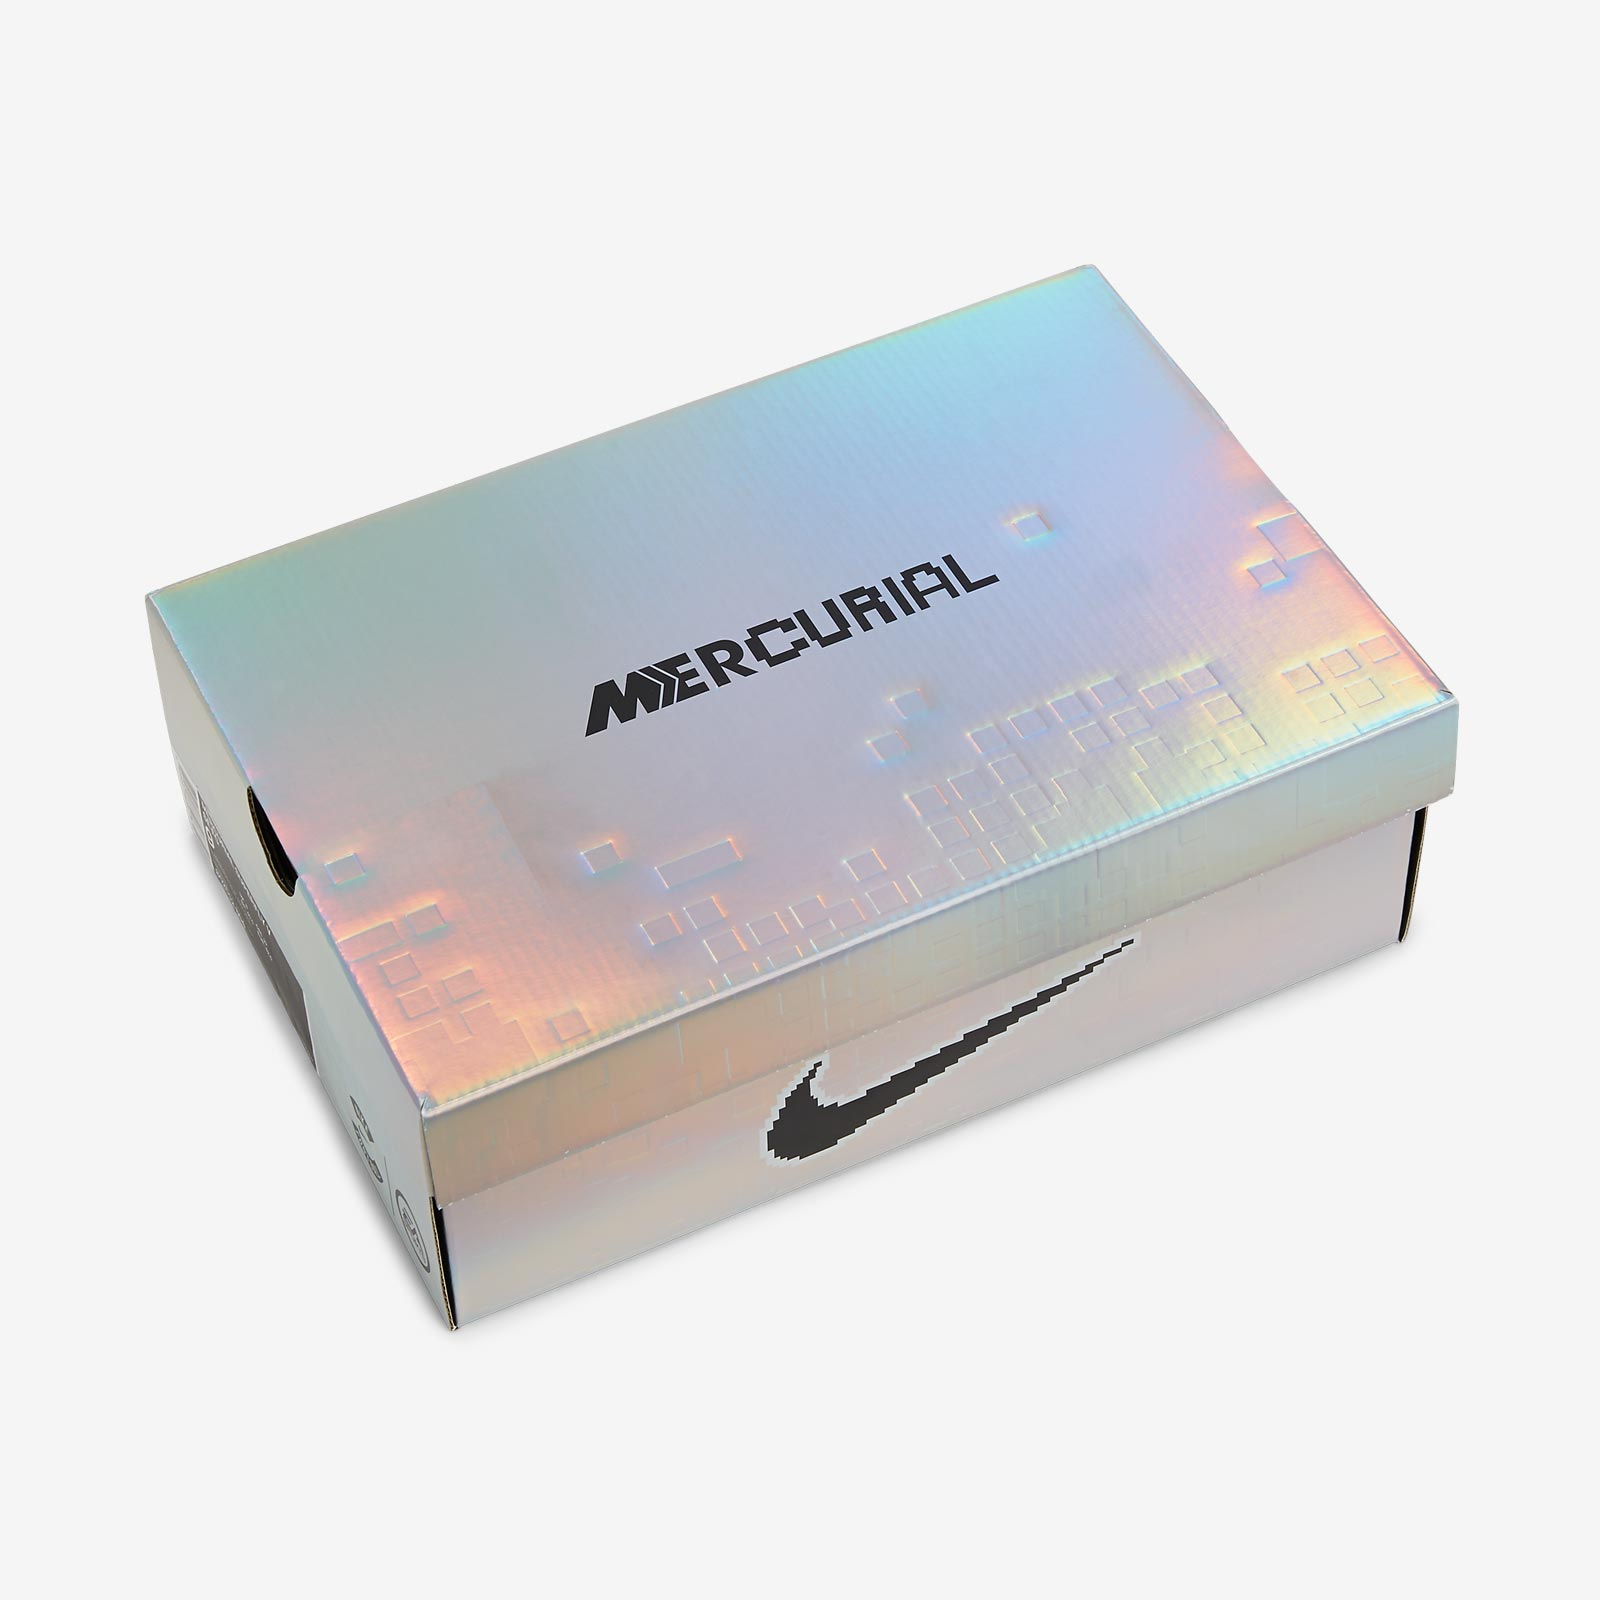 9f8061dc2fd Sale The Nike Mercurial Superfly EA Sports Boots Are Available Again